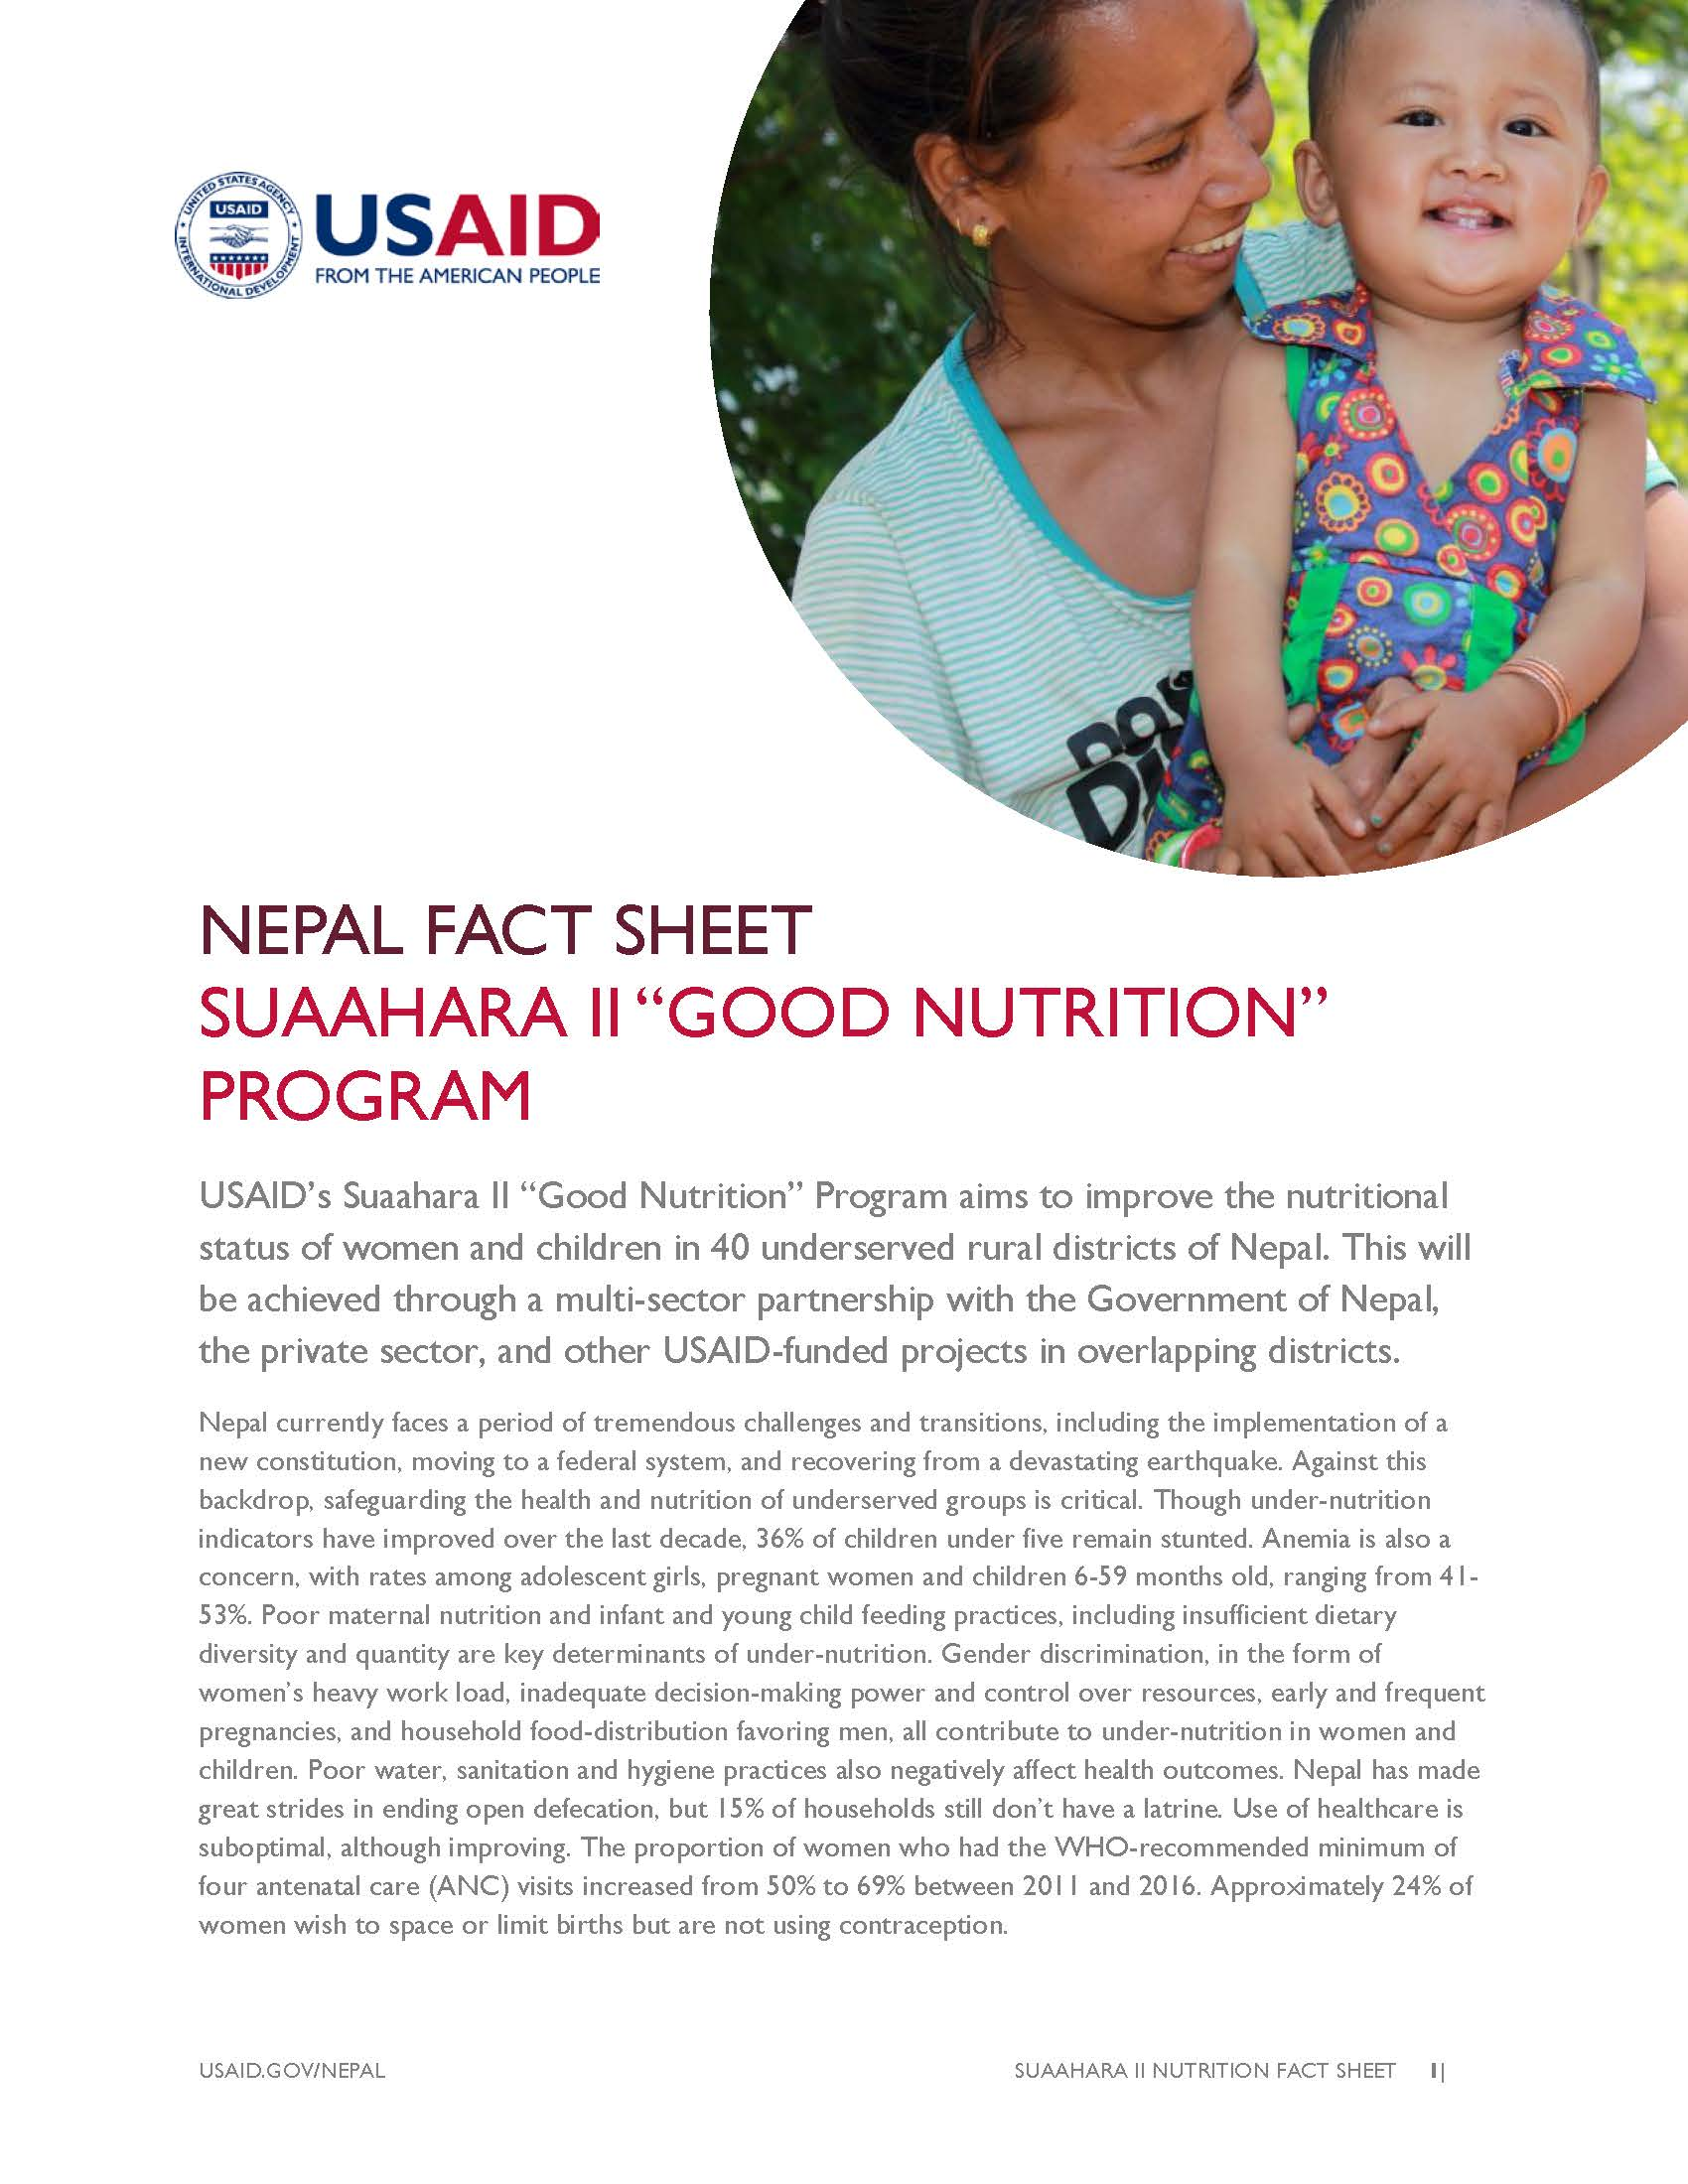 FACT SHEET: SUAAHARA PROJECT II – GOOD NUTRITION Program